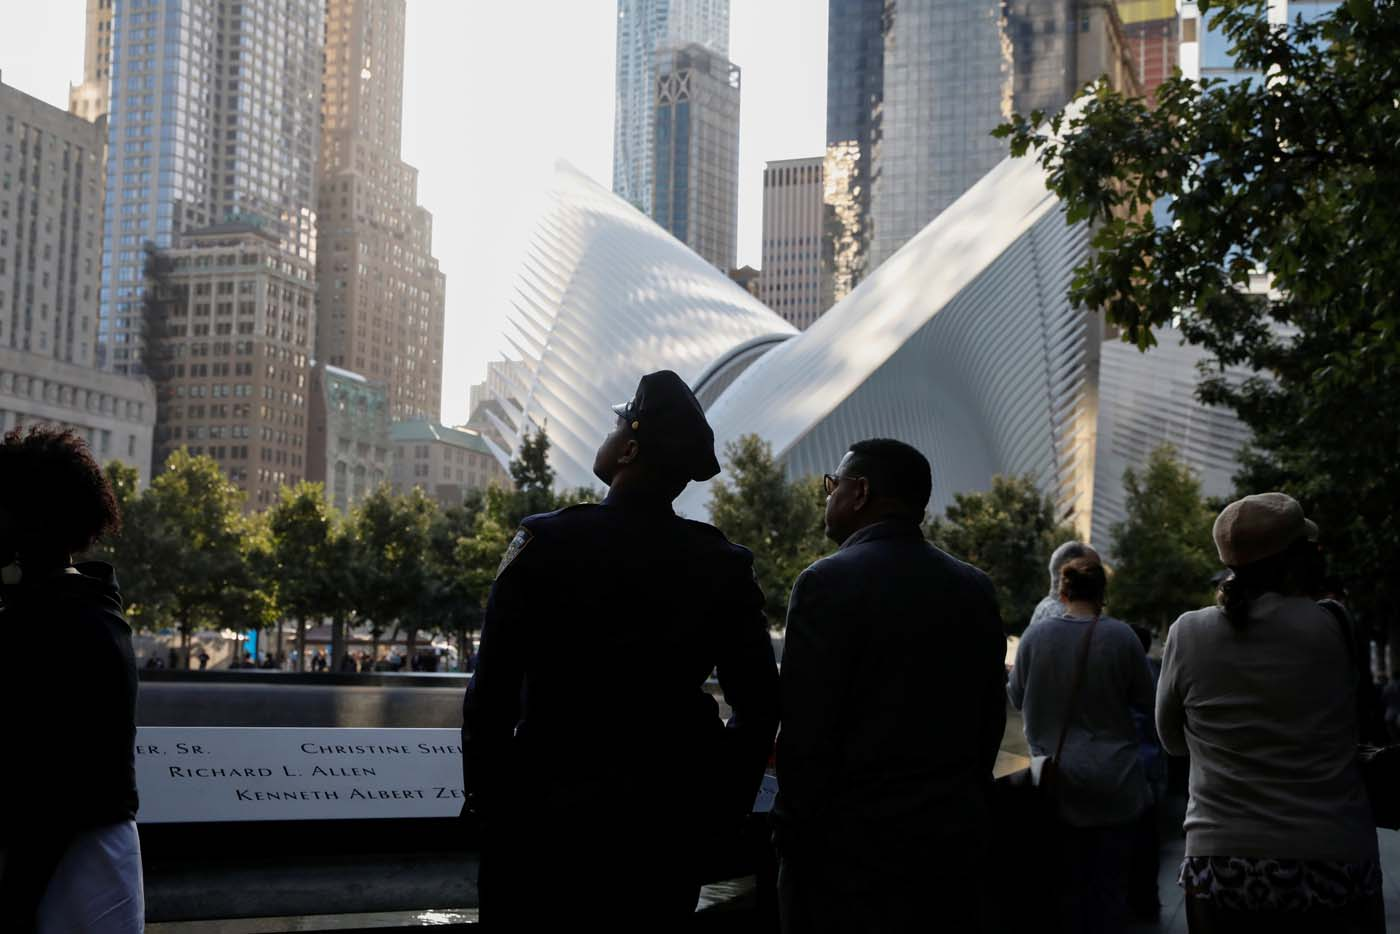 People pause at the edge of the South reflecting pool at the National September 11 Memorial and Museum during ceremonies marking the 16th anniversary of the September 11, 2001 attacks in New York, U.S. September 11, 2017. REUTERS/Brendan McDermid